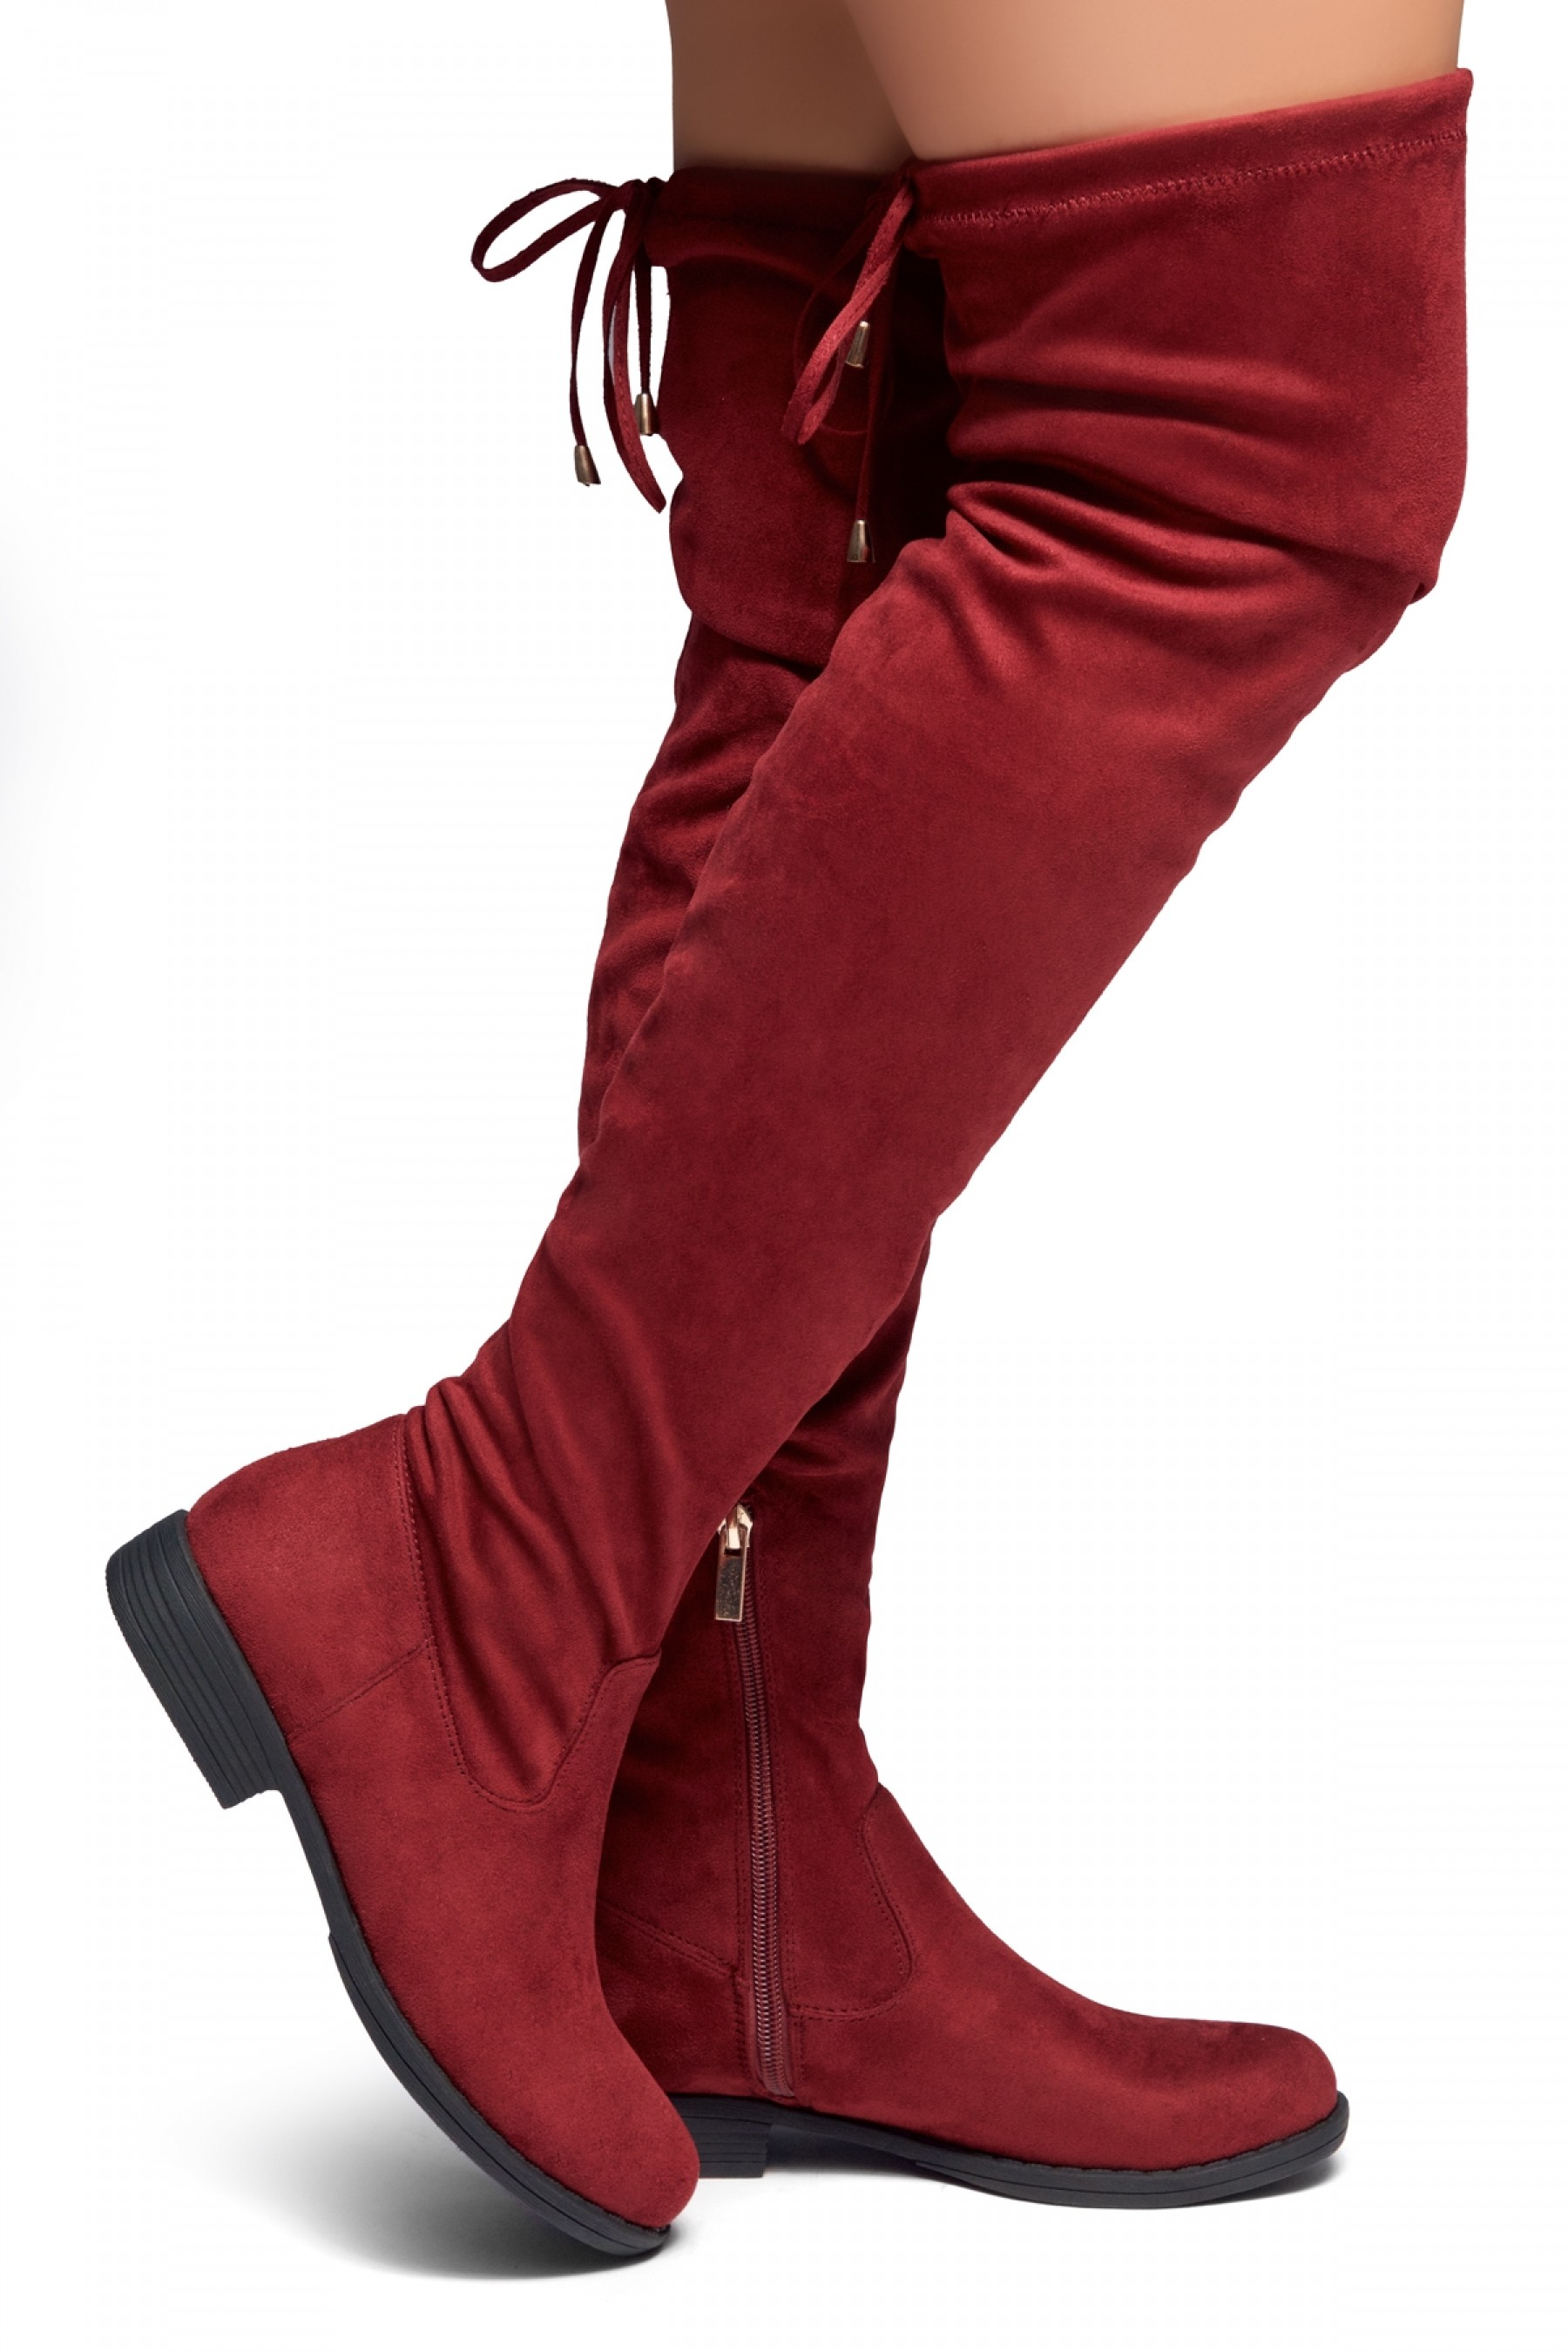 HerStyle Secret Obsession-Women's FashionThigh High Construction Casual Boots(Burgundy)